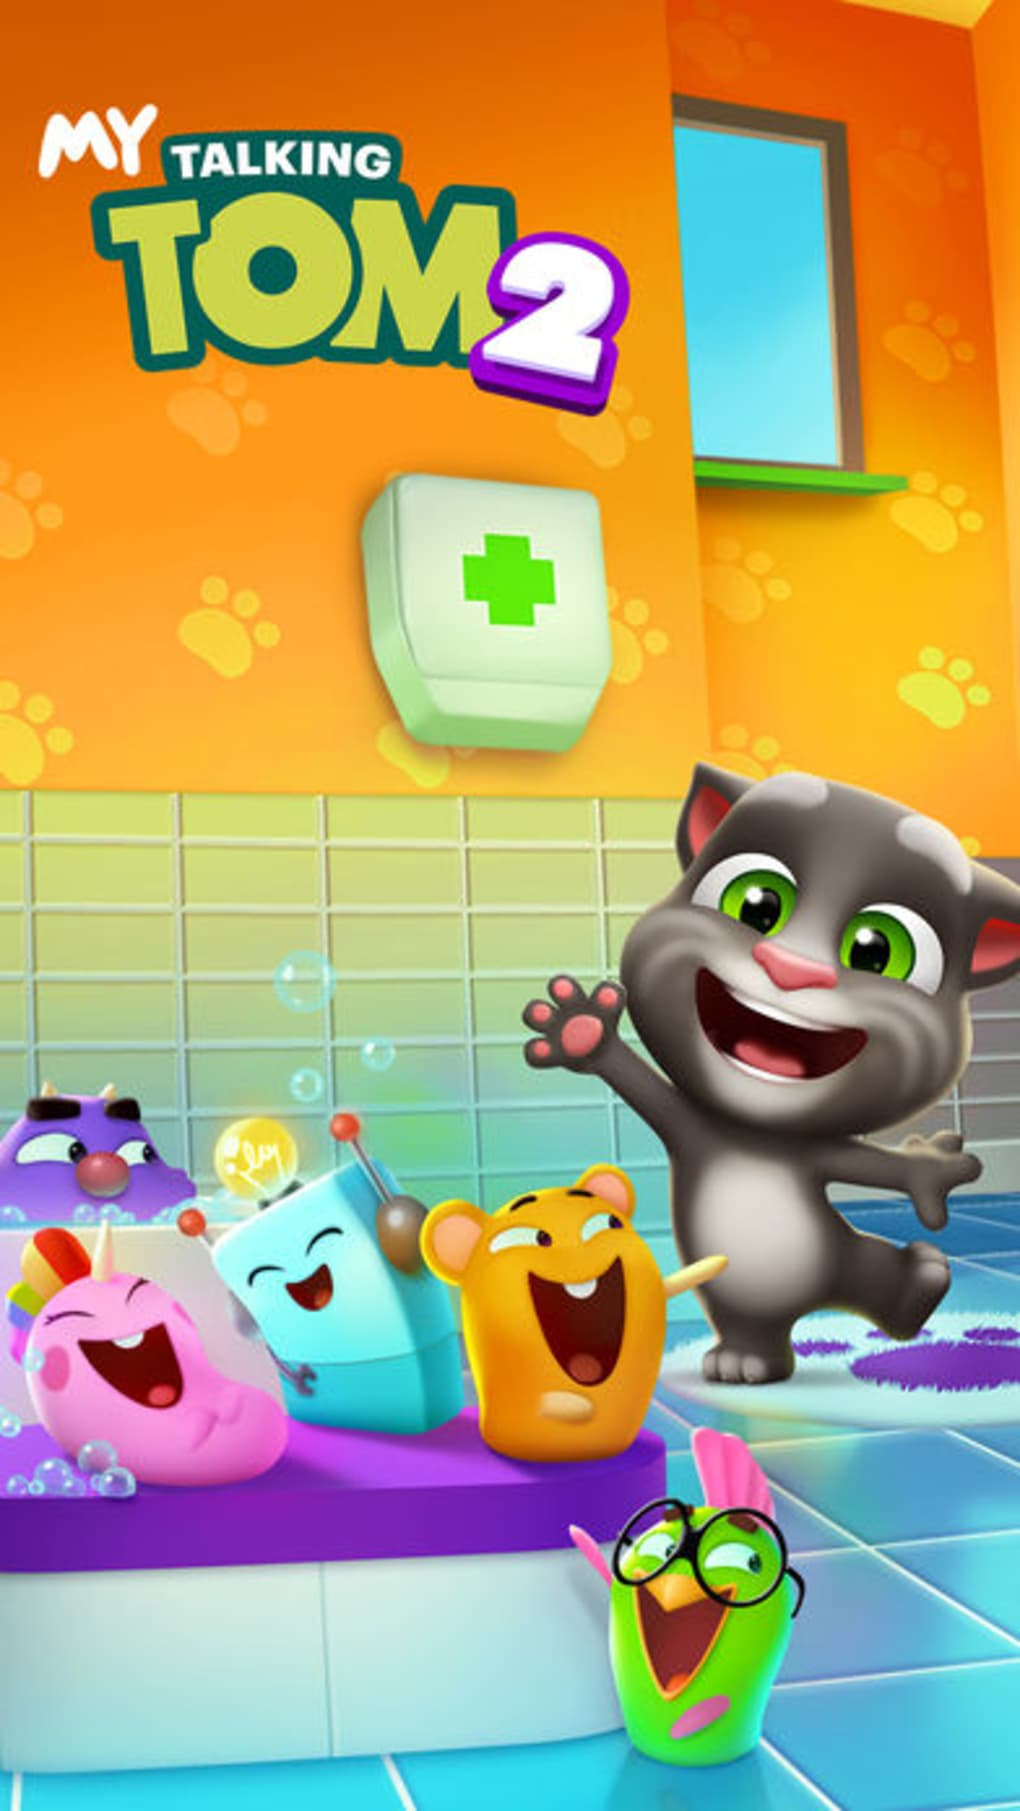 My Talking Tom 2 for iPhone - Download